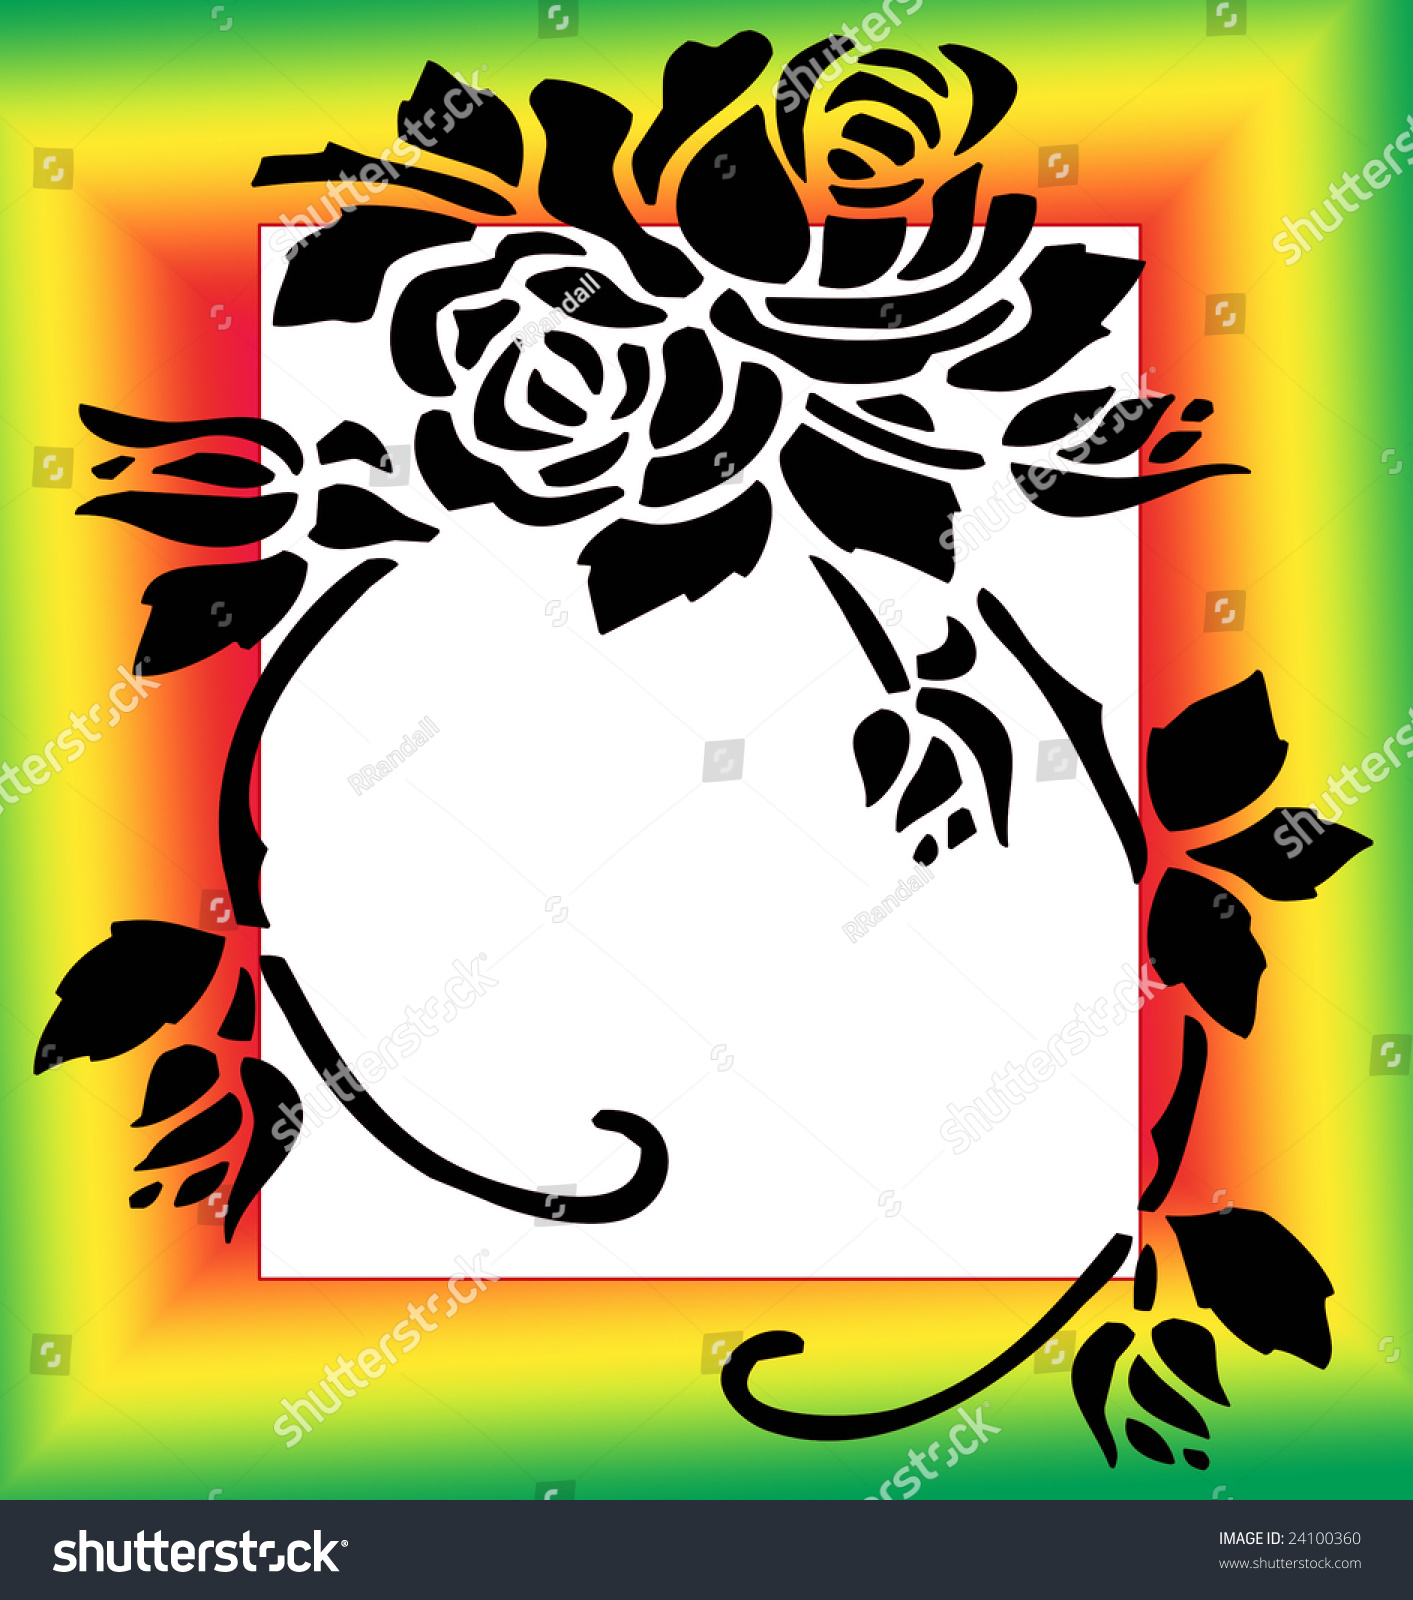 abstract black silhouette rose flower clip stock illustration Yellow Softball Border Clip Art abstract black silhouette rose flower clip art stencil design on a gradient bright green yellow and red frame border illustration